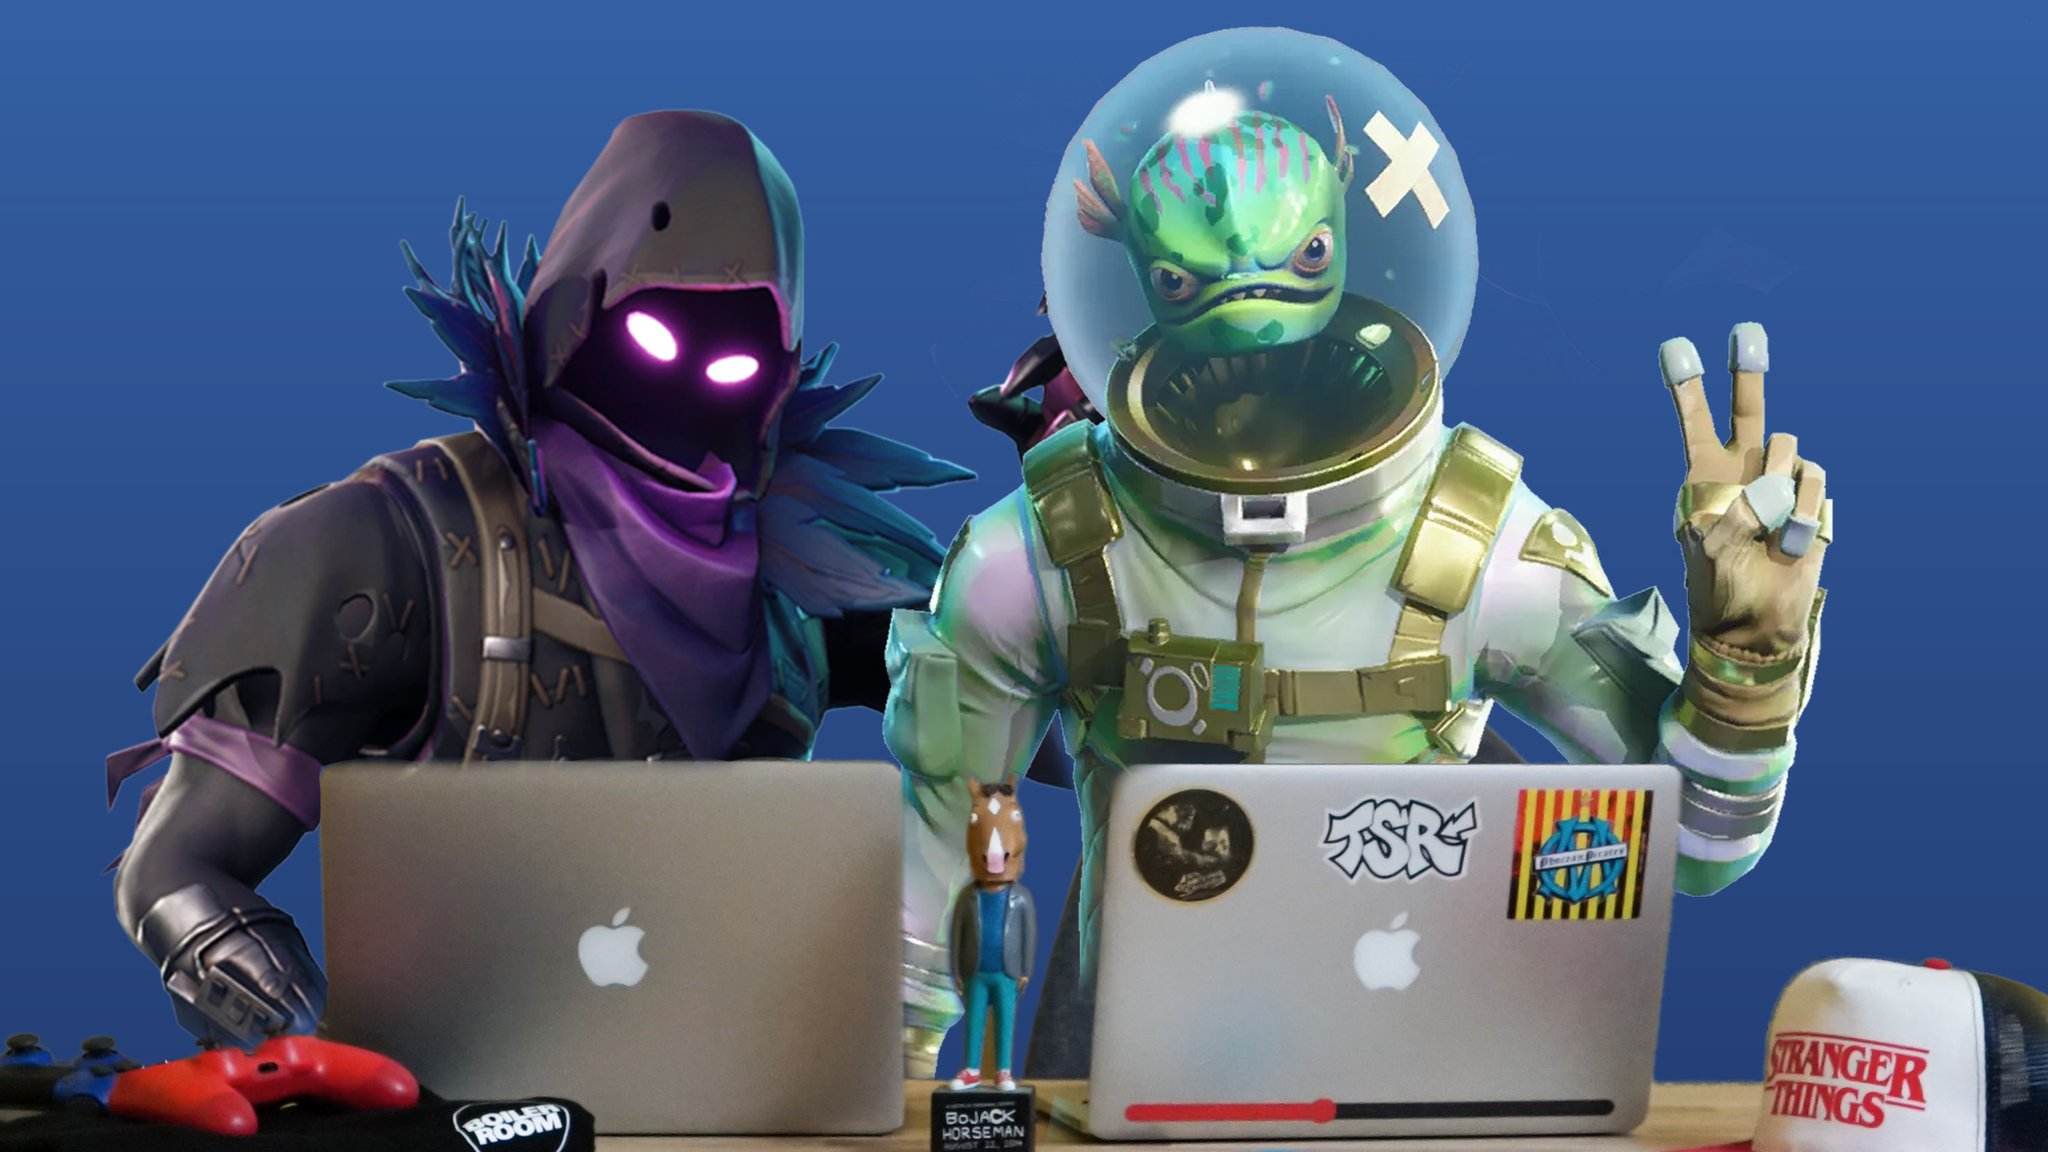 Fortnite used by company for job interviews